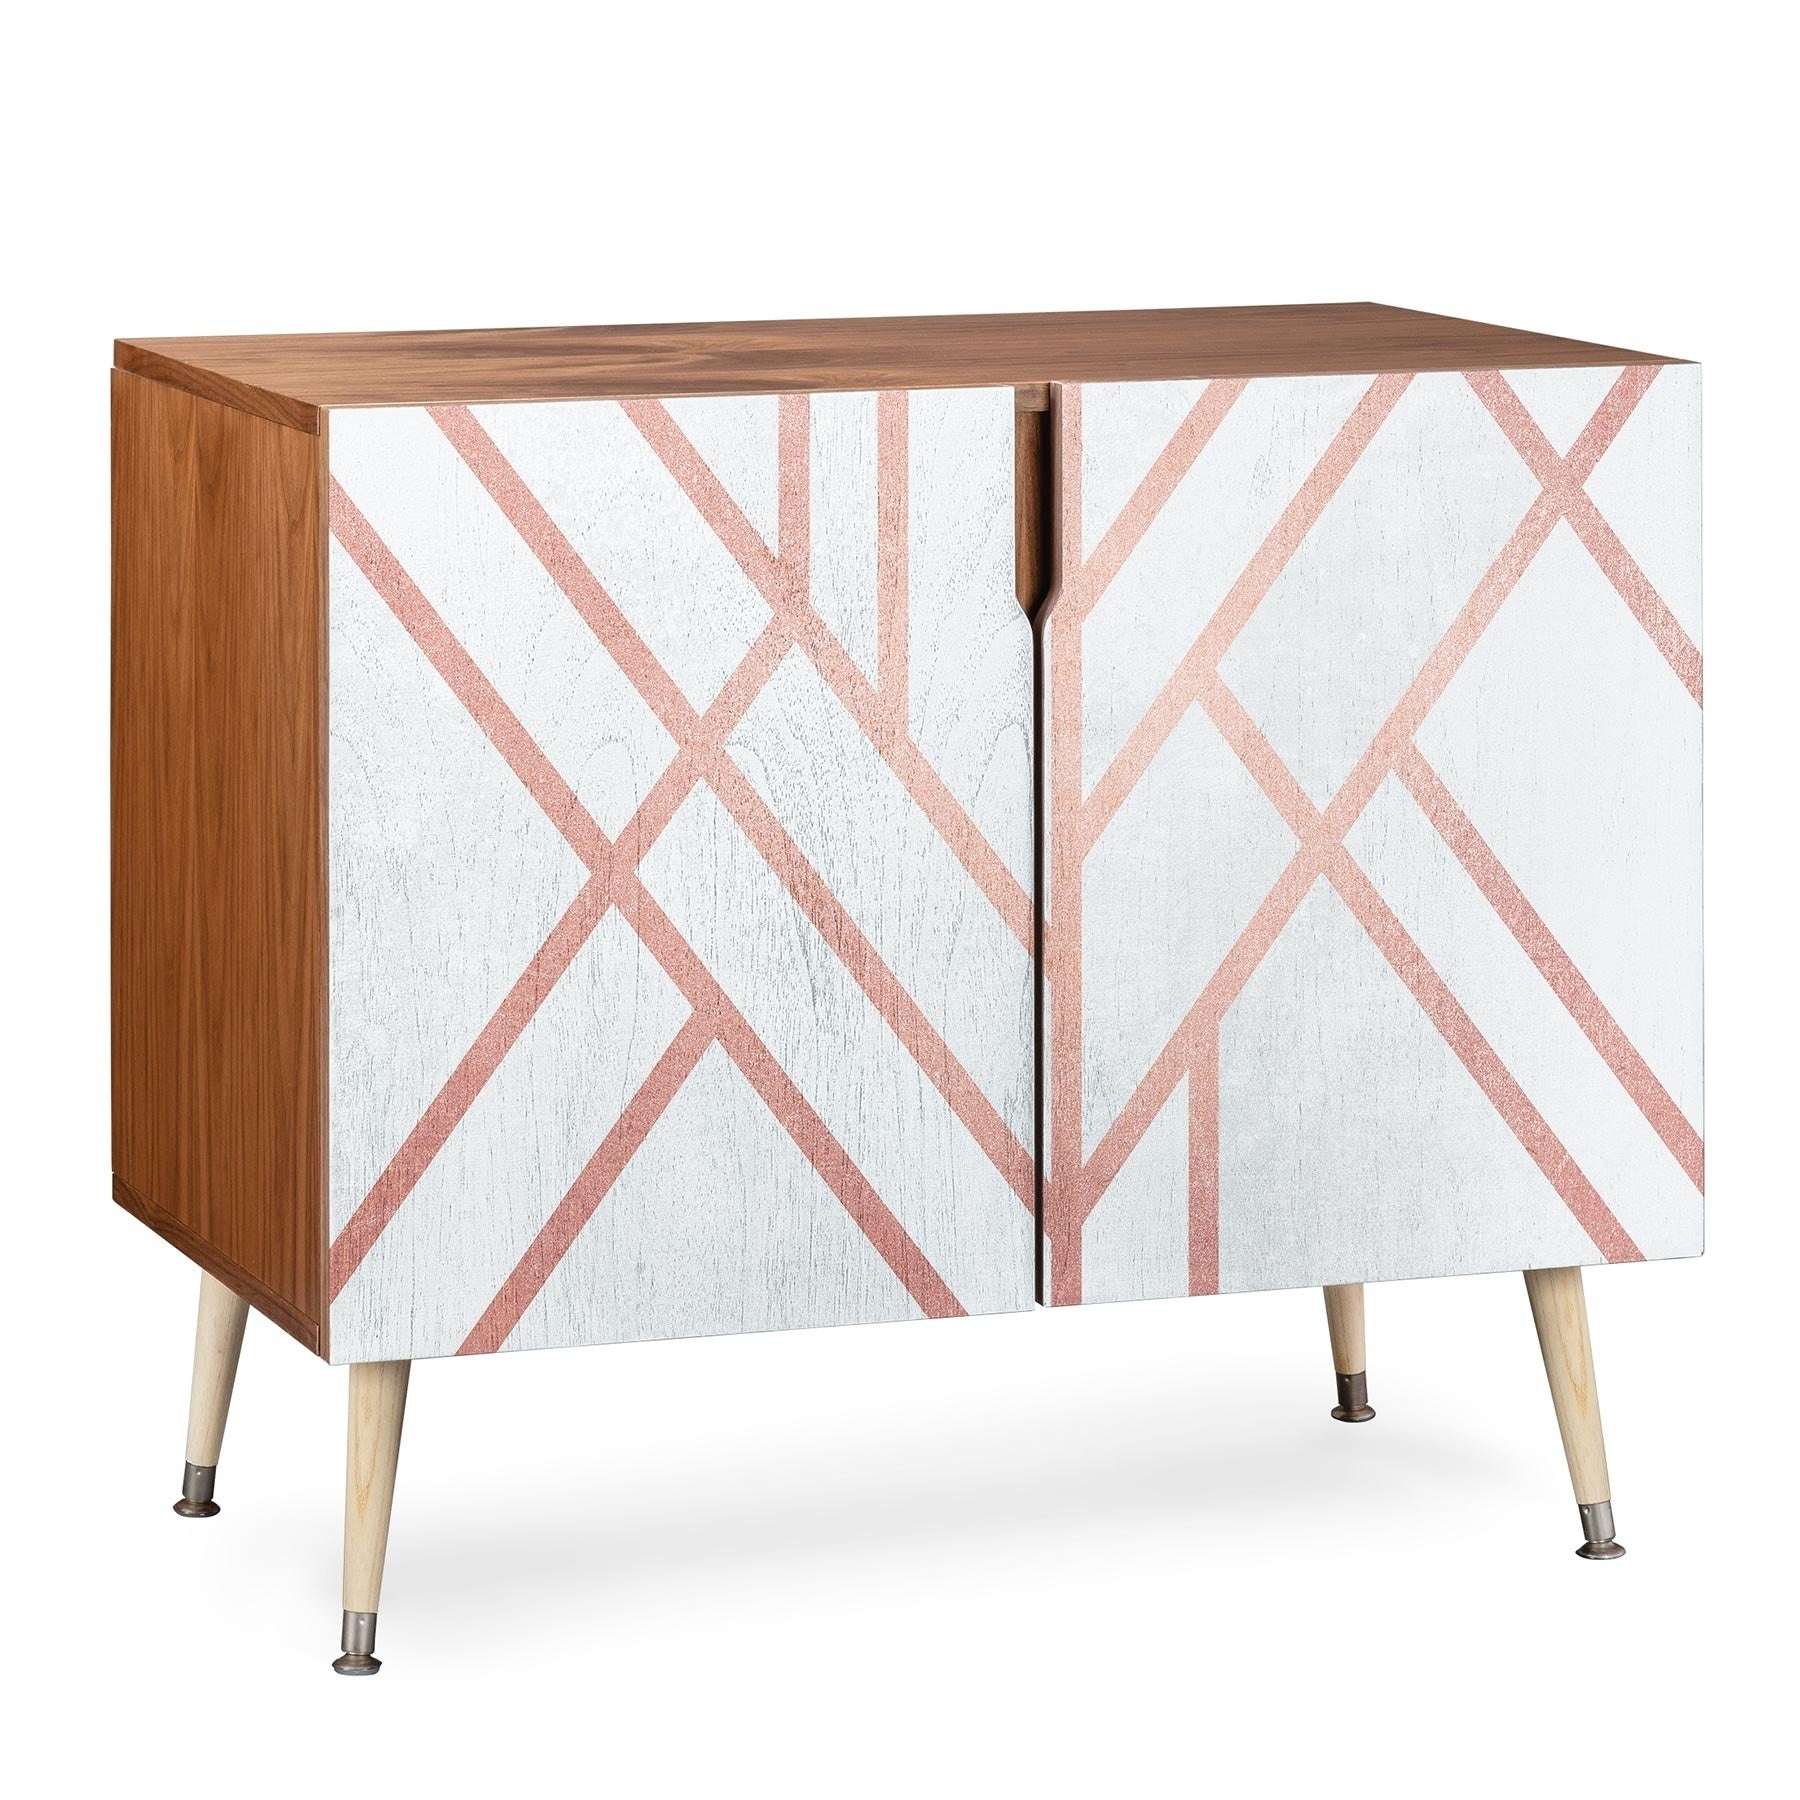 Deny Designs Pink And White Geometric Credenza (Birch Or Walnut, 3 Leg  Options) Within Wooden Deconstruction Credenzas (Photo 29 of 30)